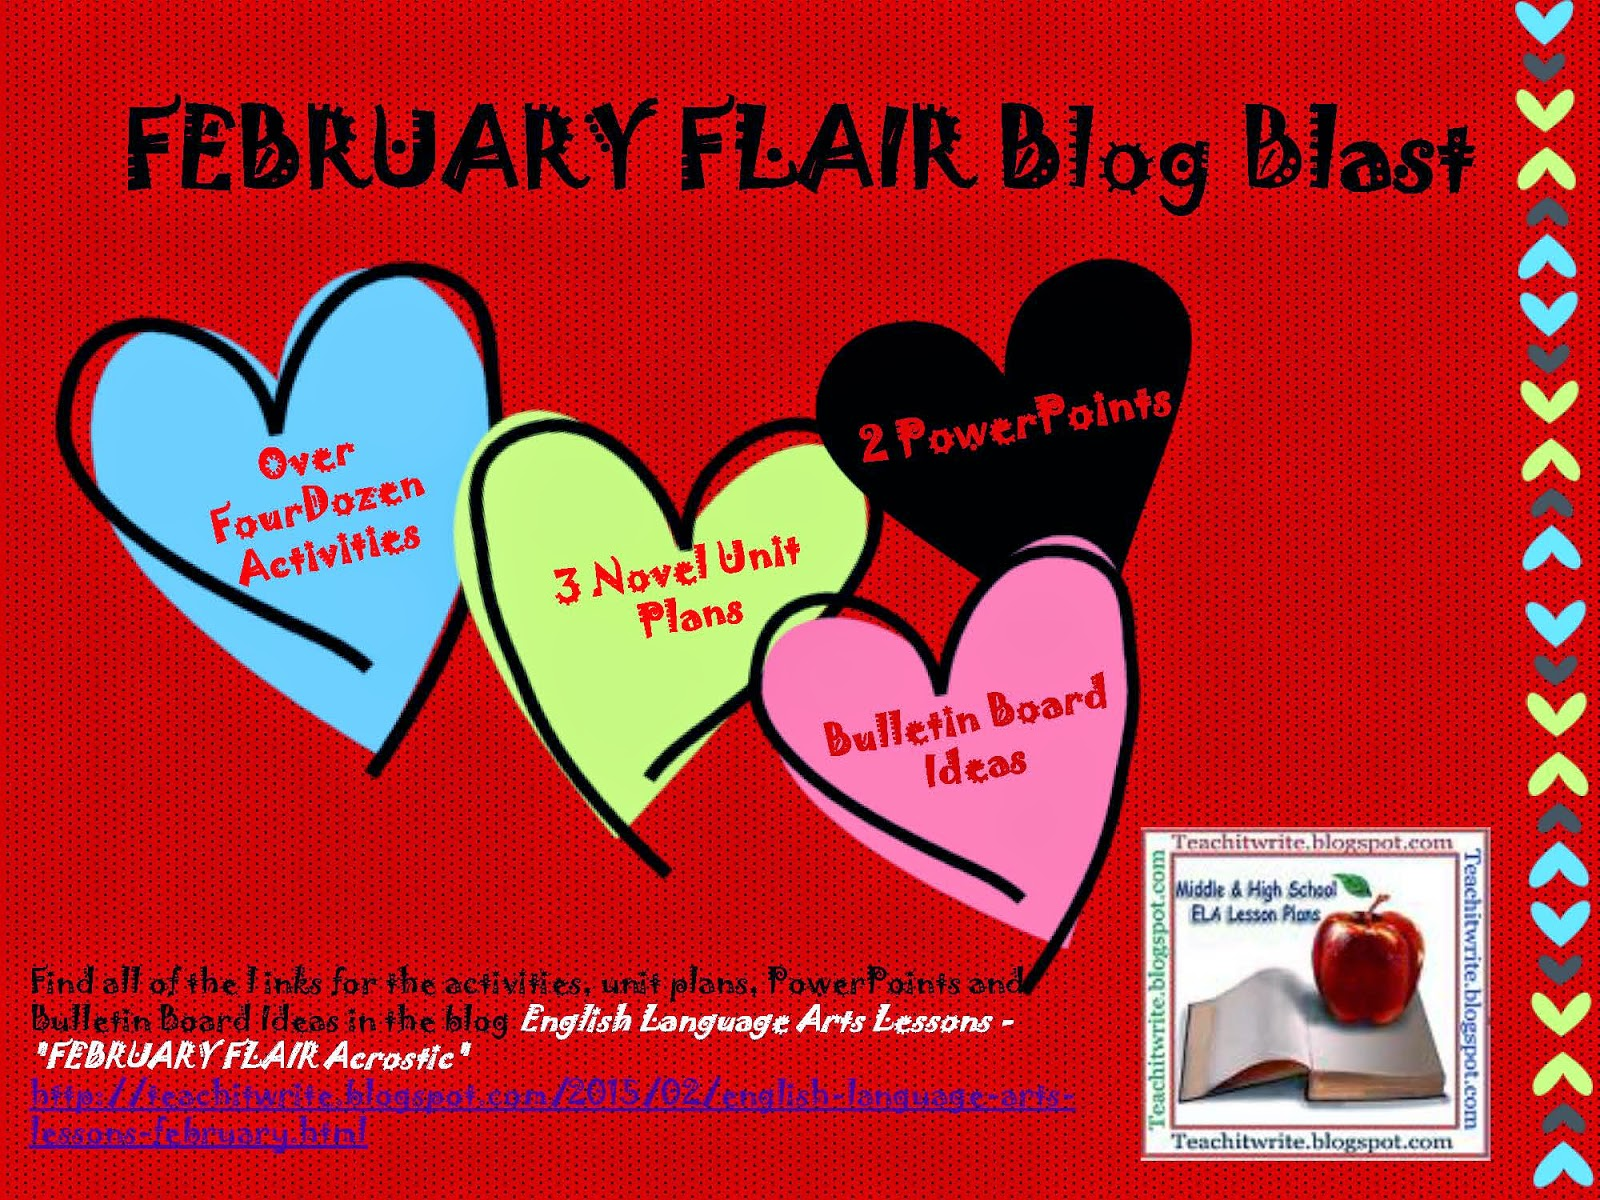 FEBRUARY FLAIR Blog Blast poster